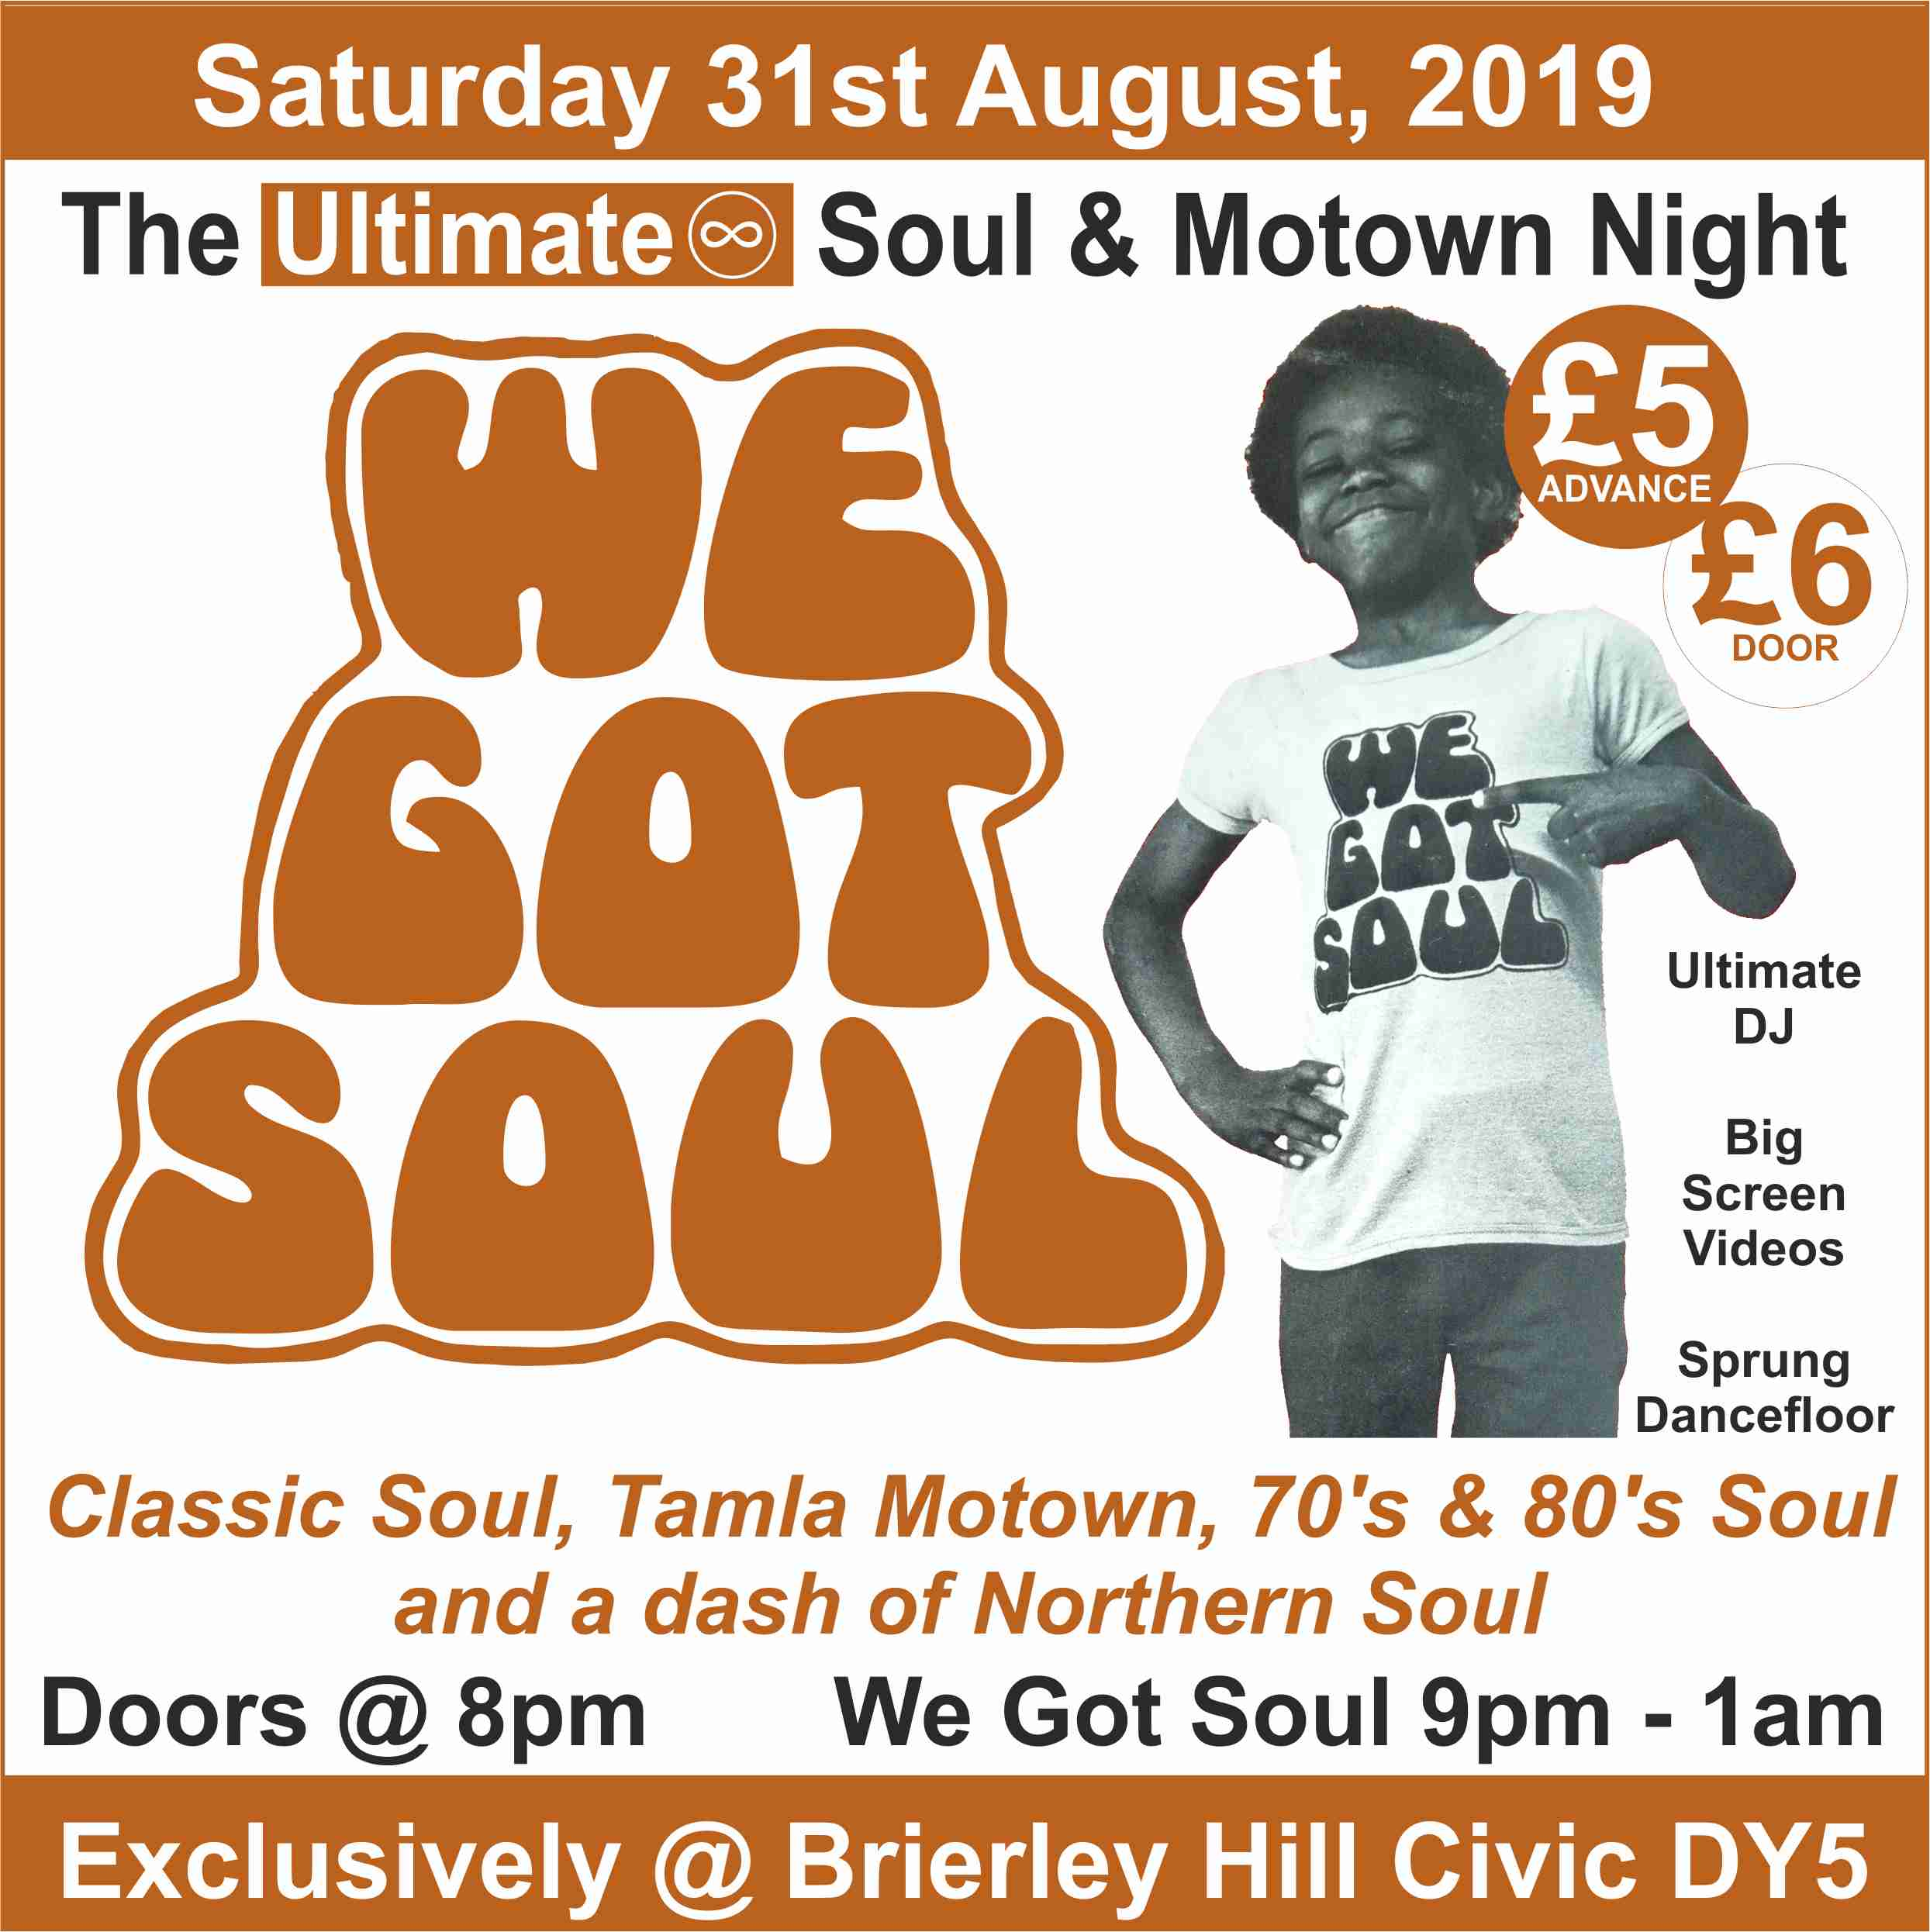 We Got Soul - The Ultimate Soul & Motown Night at Brierley Hill Civic Saturday 31st August 2019 banner image